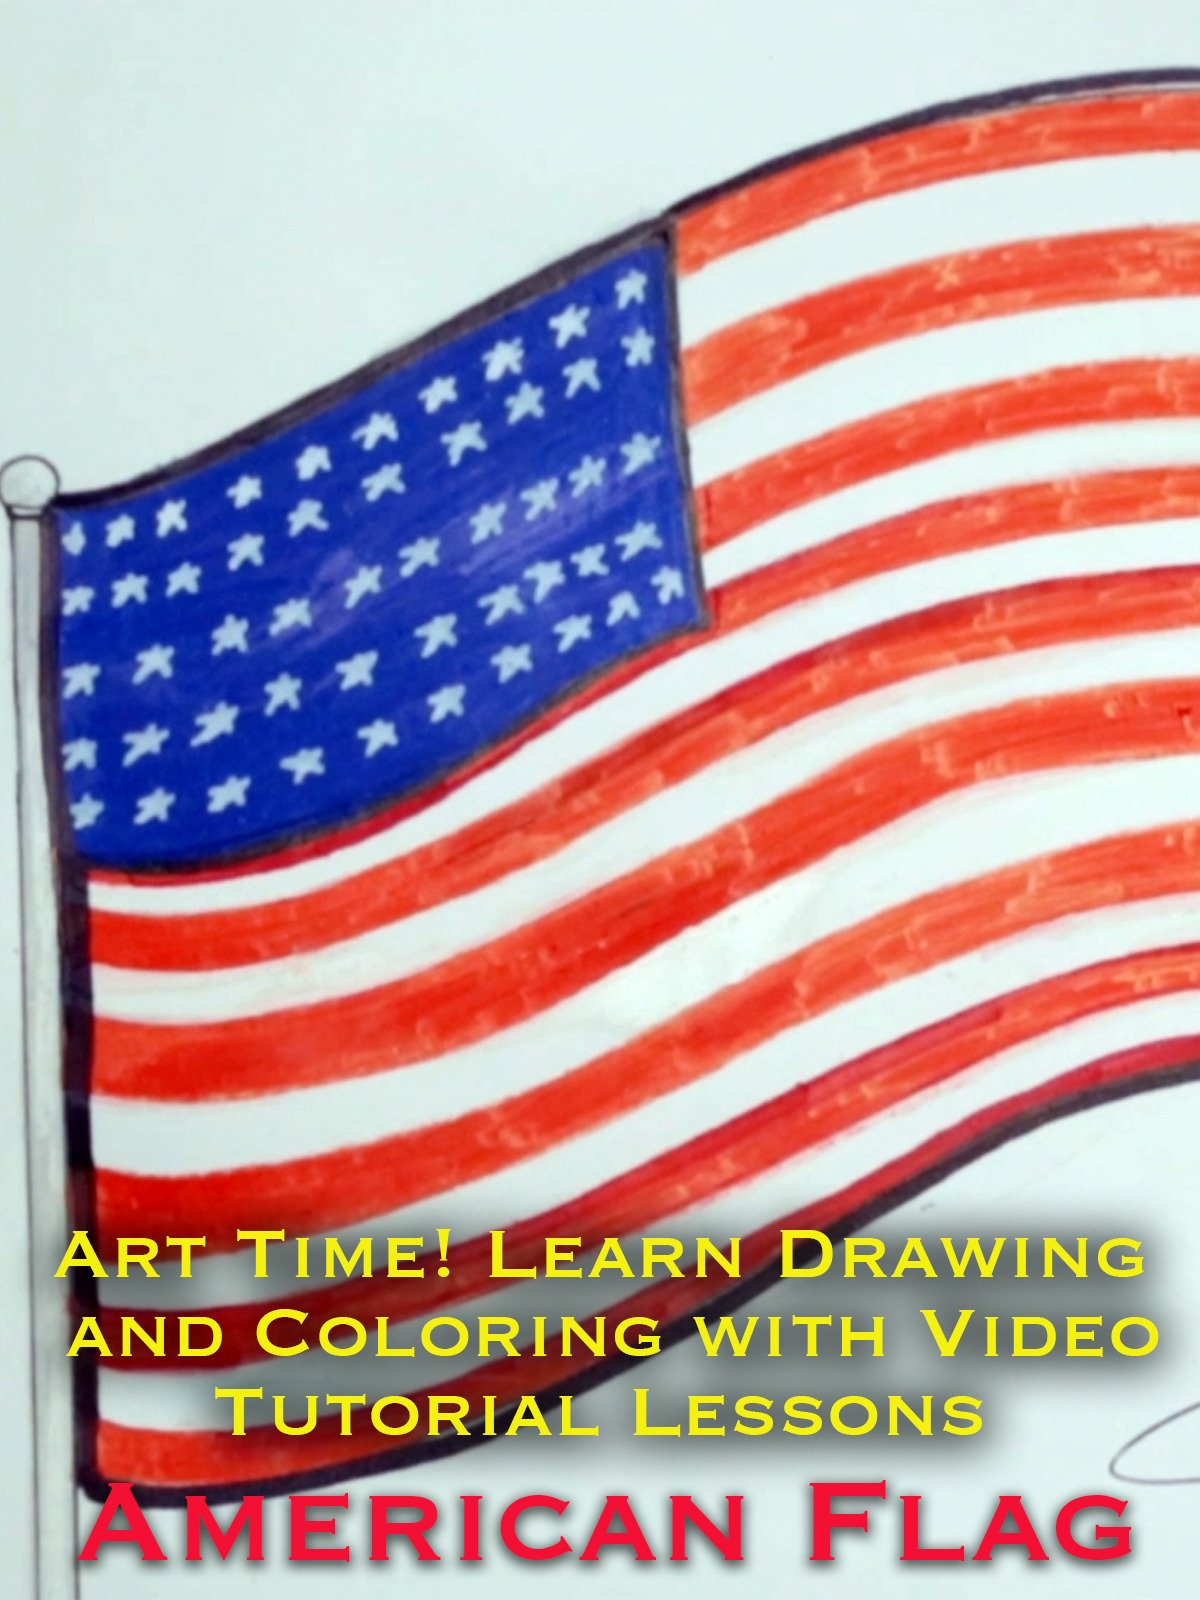 Art Time! Learn Drawing and Coloring with Video Tutorial Lessons American Flag